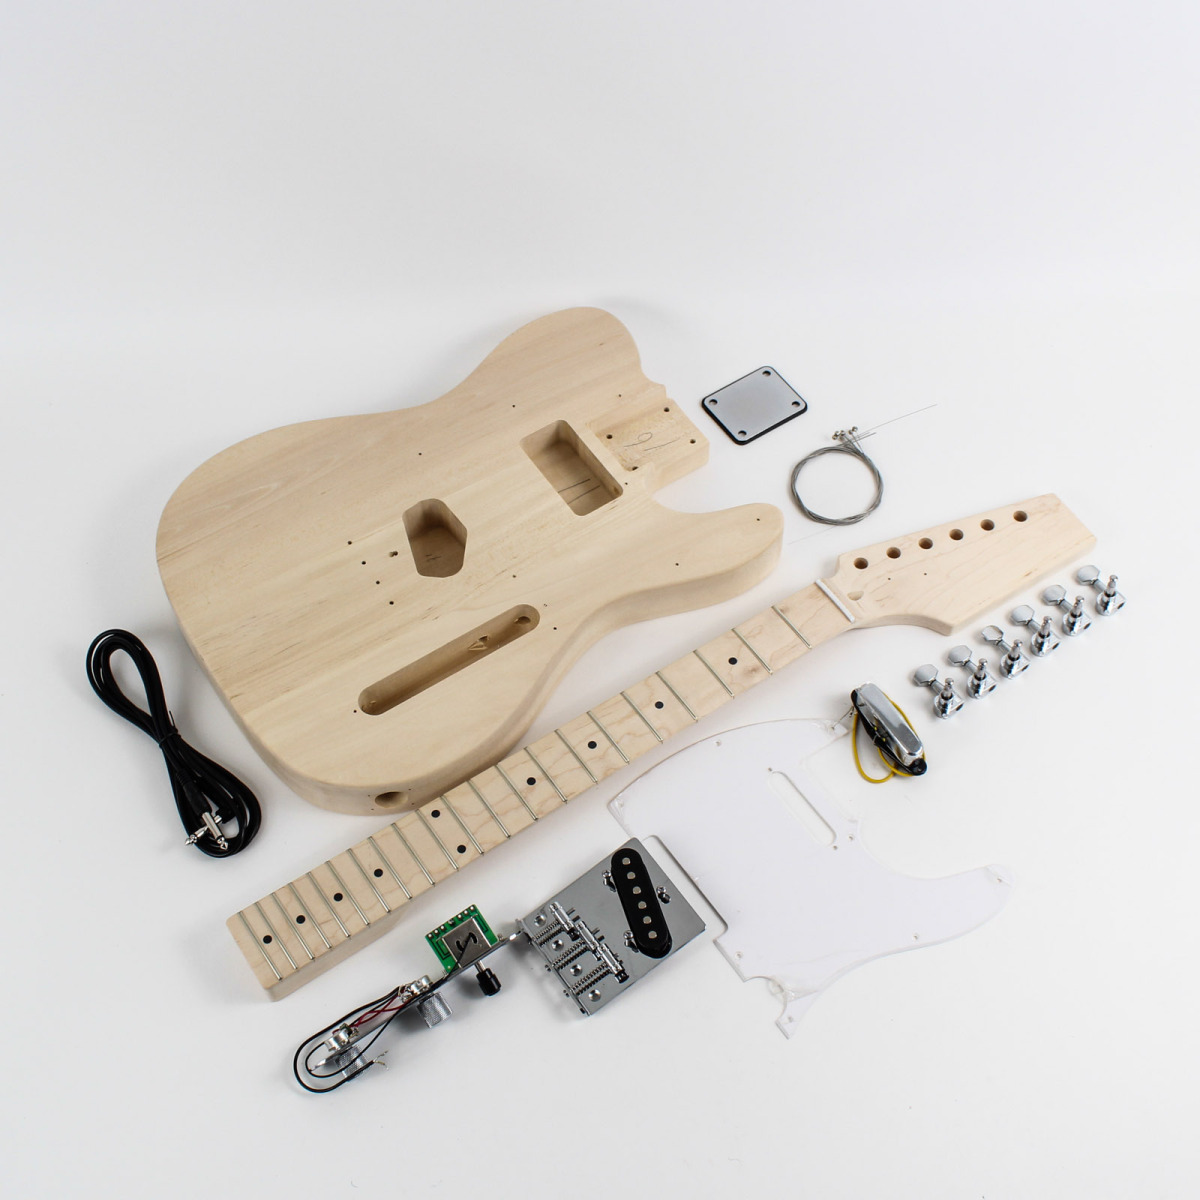 Telecaster Style Guitar Kit Diy Guitars